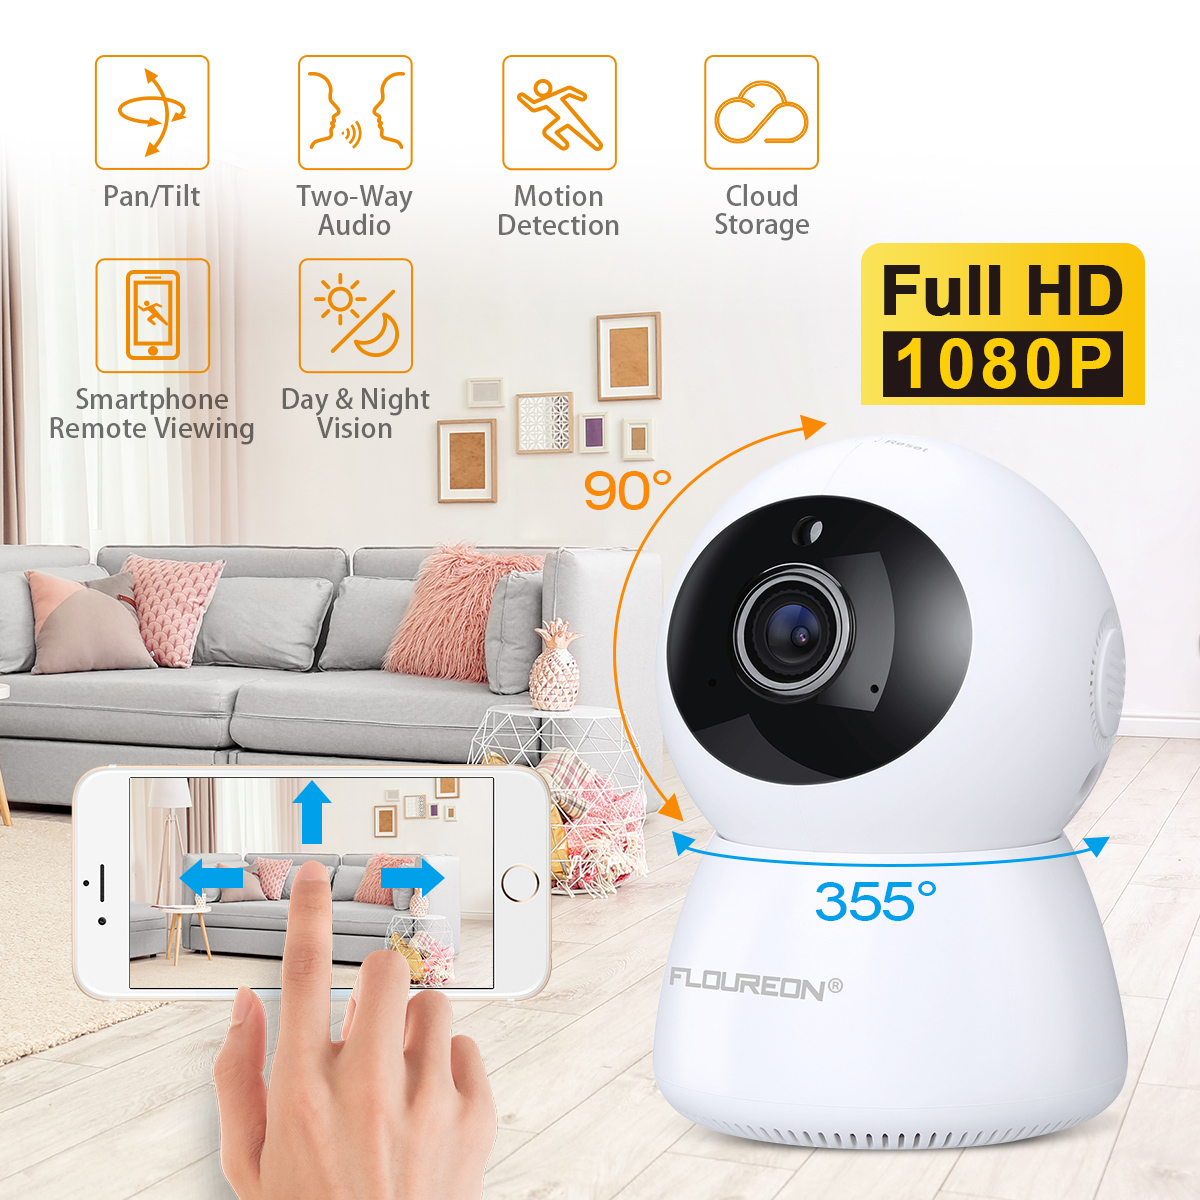 FLOUREON 1080P Wireless Security IP Panoramic Camera Two-Way Audio Night Vision Home Surveillance with Motion Detection for Baby